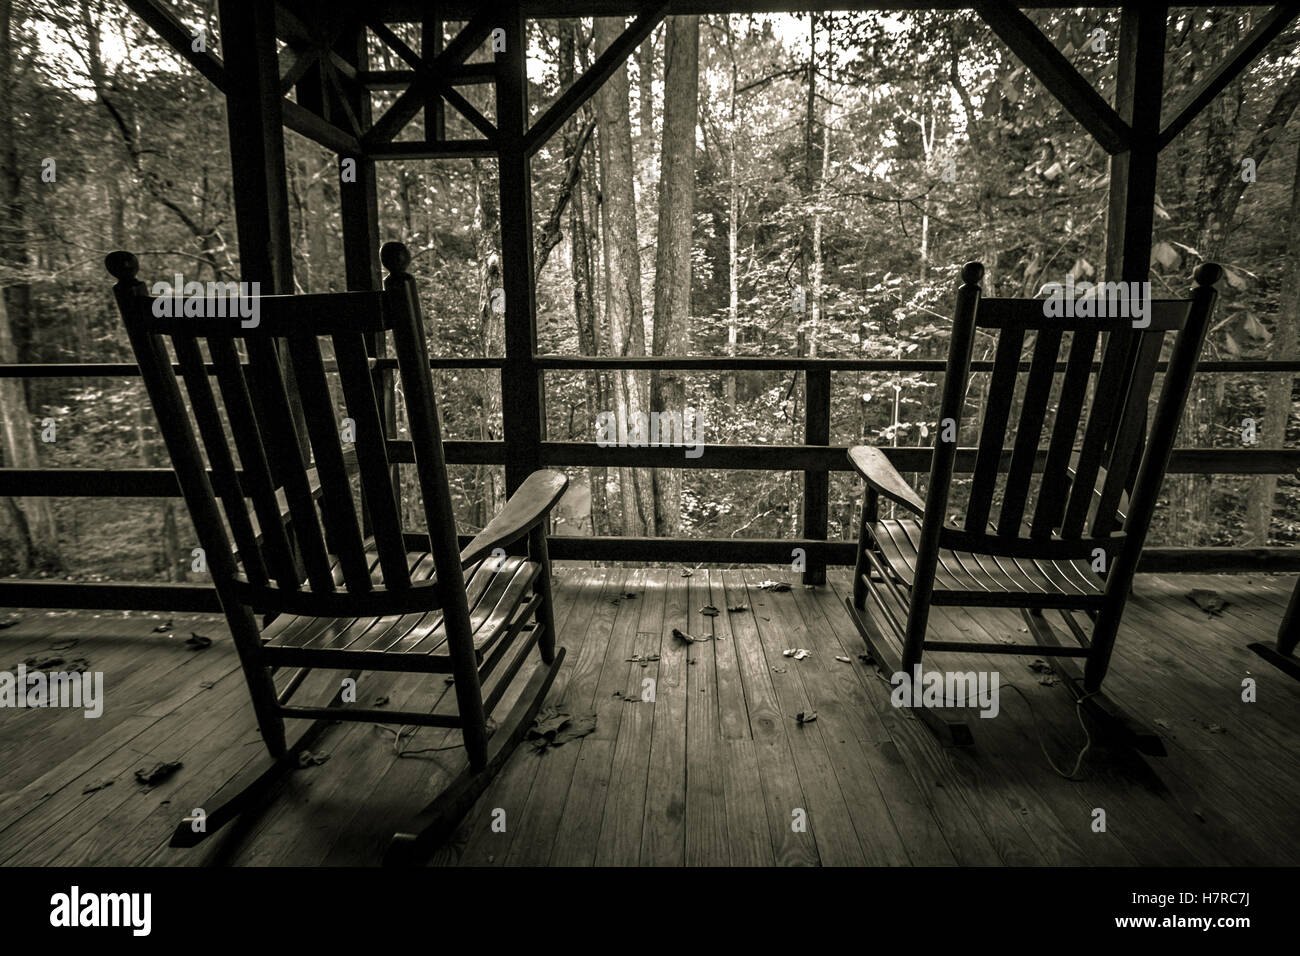 Empty Rocking Chairs On Front Porch. Two Empty Wooden Rocking Chairs On A  Wooden Front Porch Overlooking The Forest